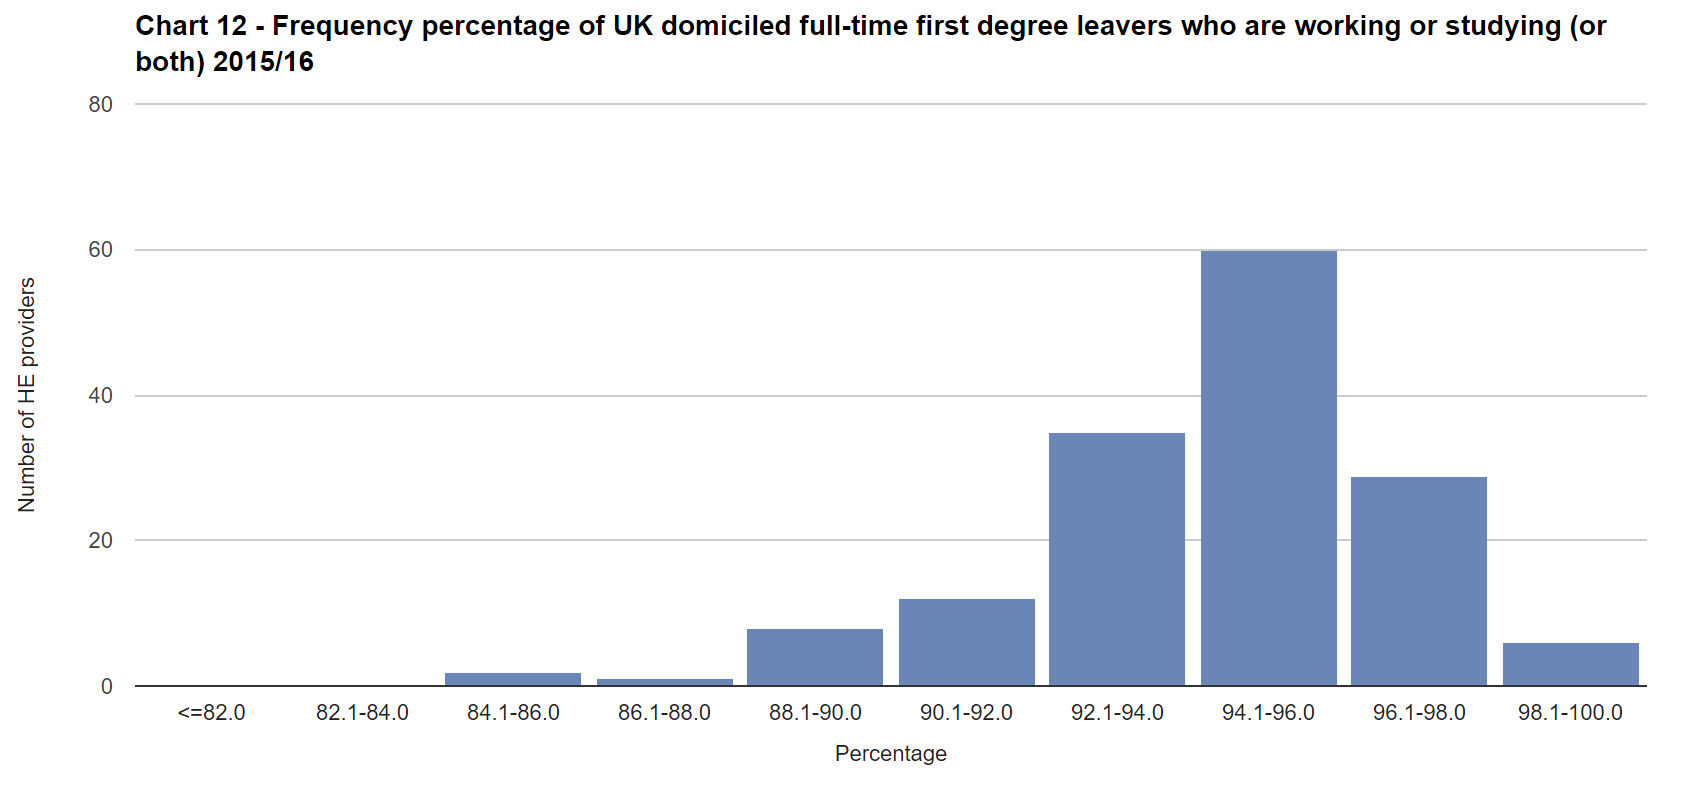 Chart 12 - Frequency percentage of UK domiciled full-time first degree leavers who are working or studying (or both) 2015/16